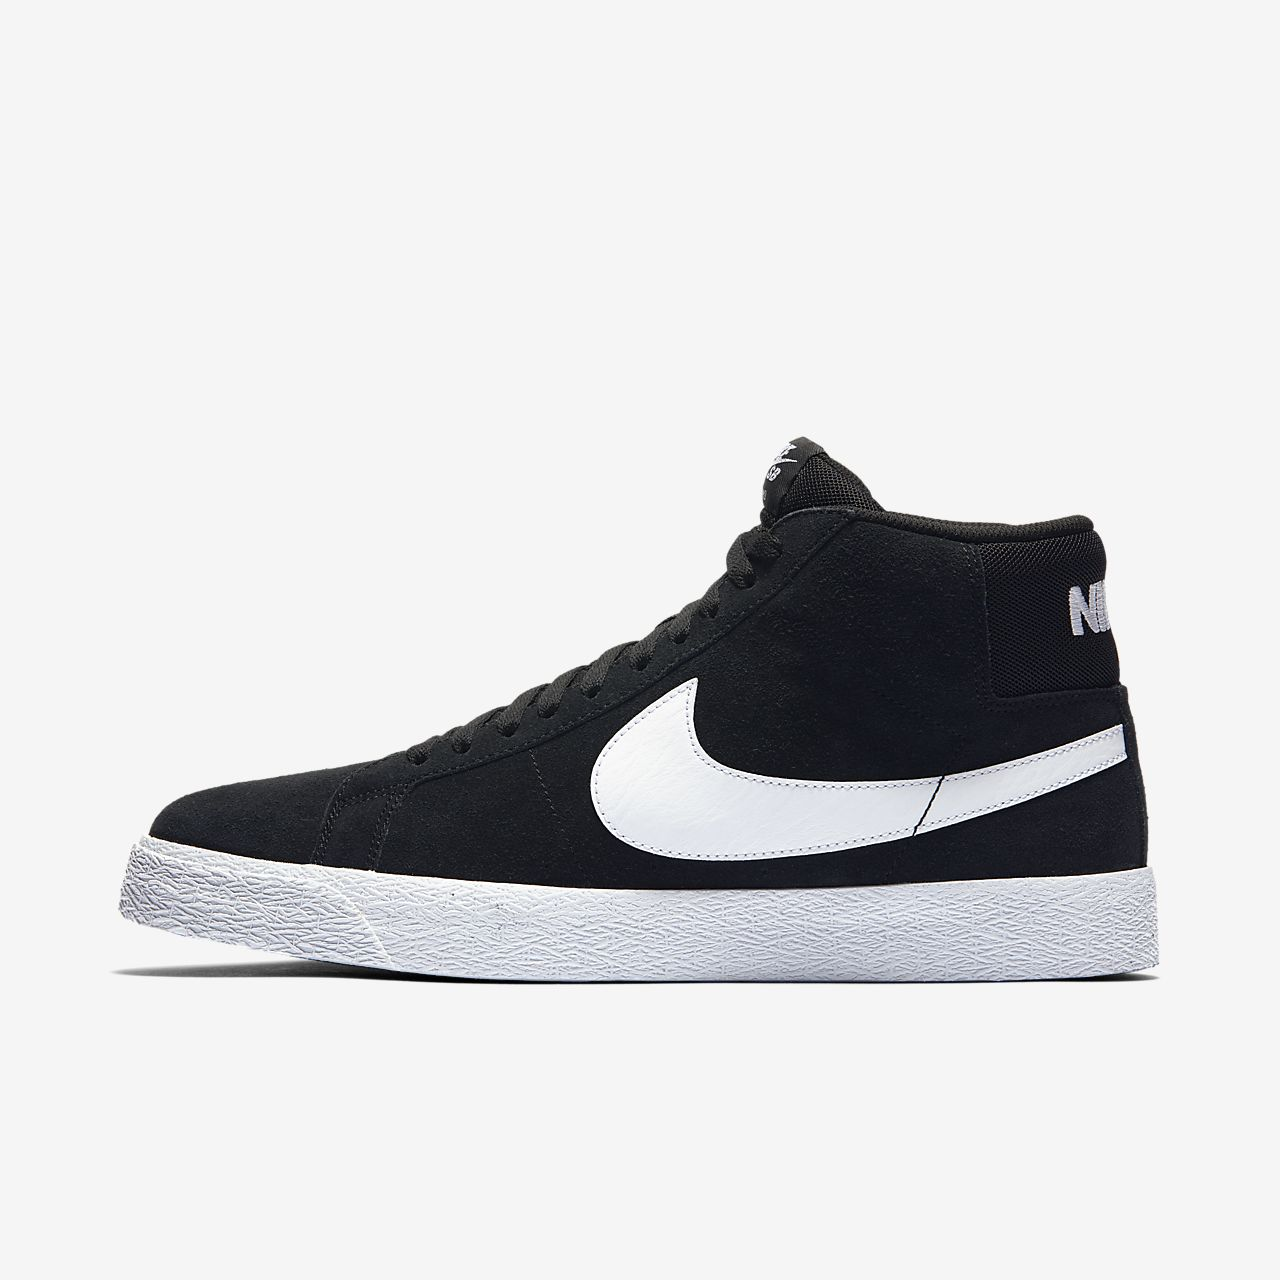 8f978143ec4 Low Resolution Nike SB Zoom Blazer Mid Skate Shoe Nike SB Zoom Blazer Mid  Skate Shoe